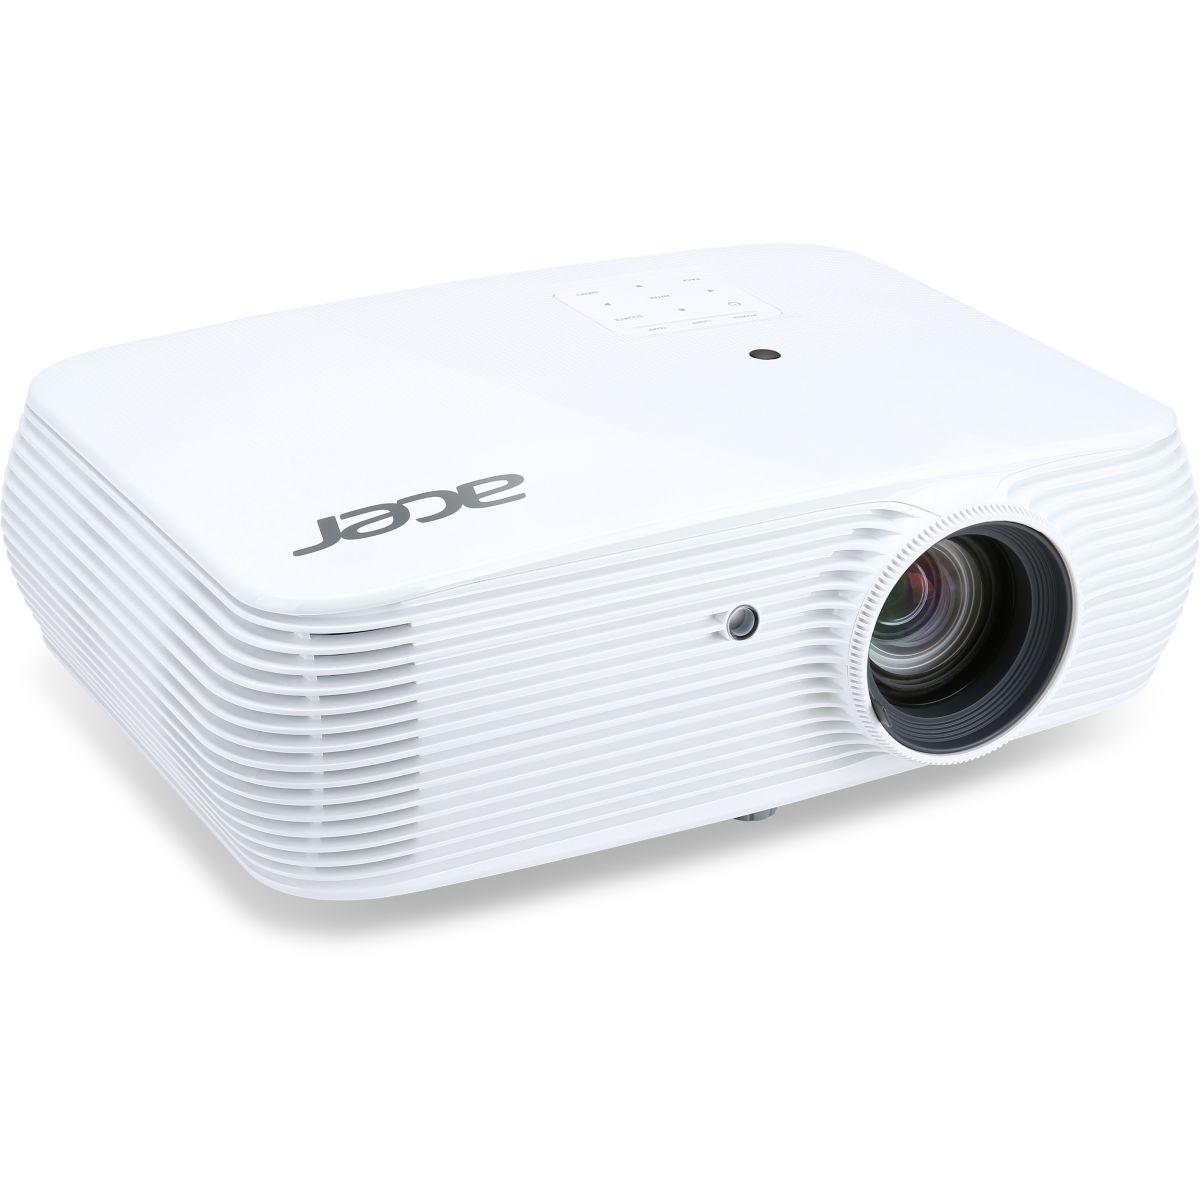 Vid�oprojecteur home cin�ma acer p5330w (photo)